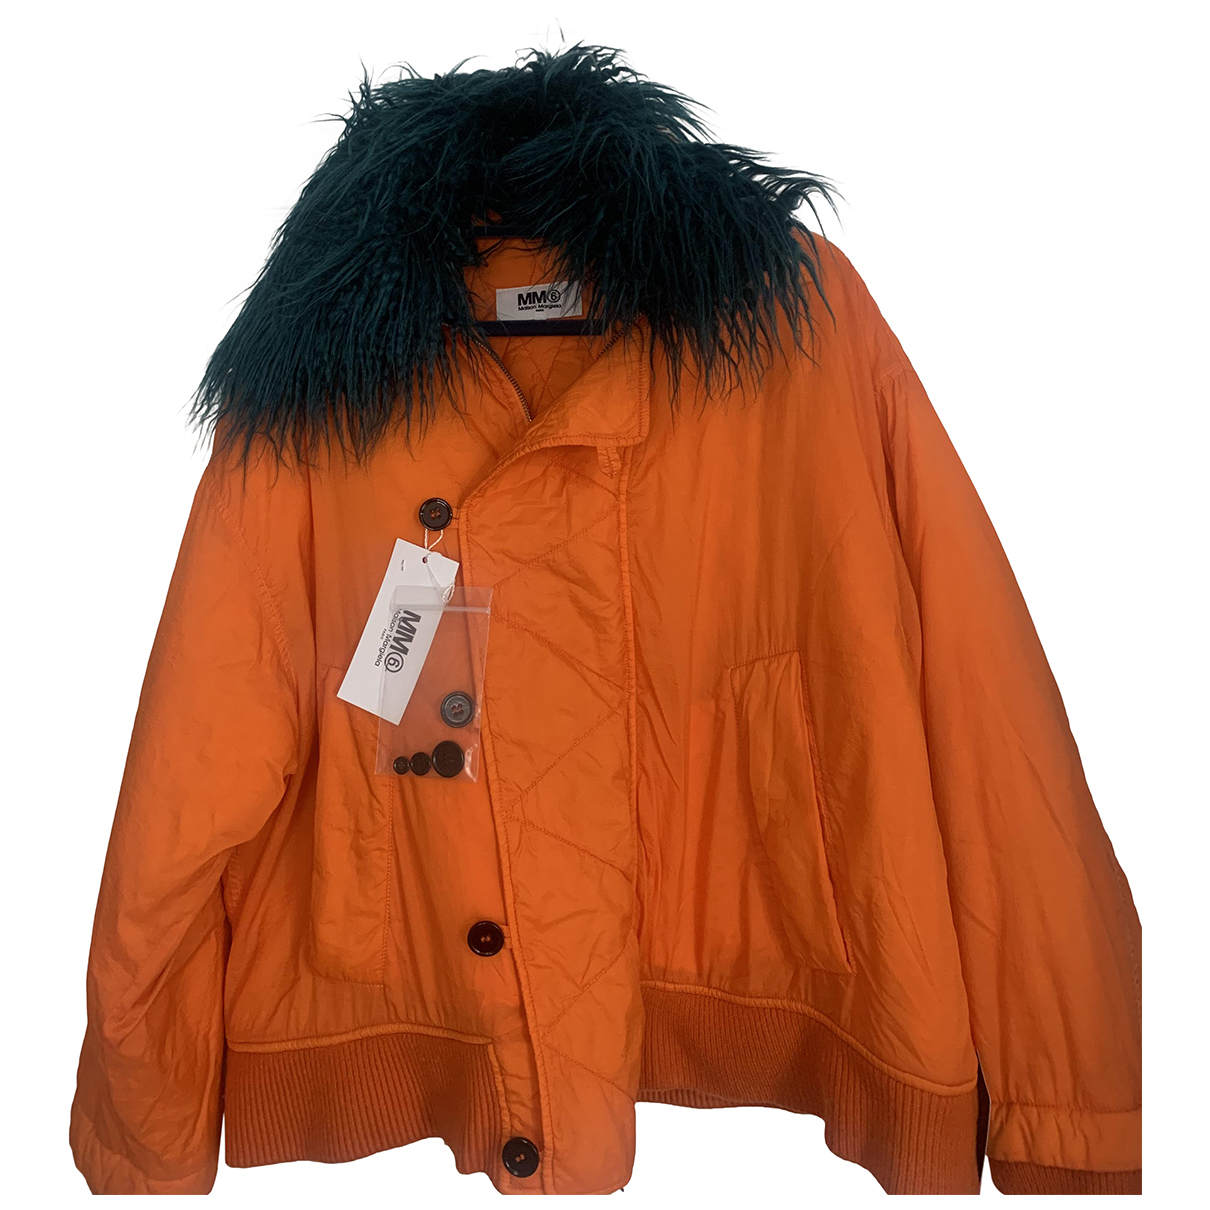 Maison Martin Margiela N Orange jacket for Women 40 FR